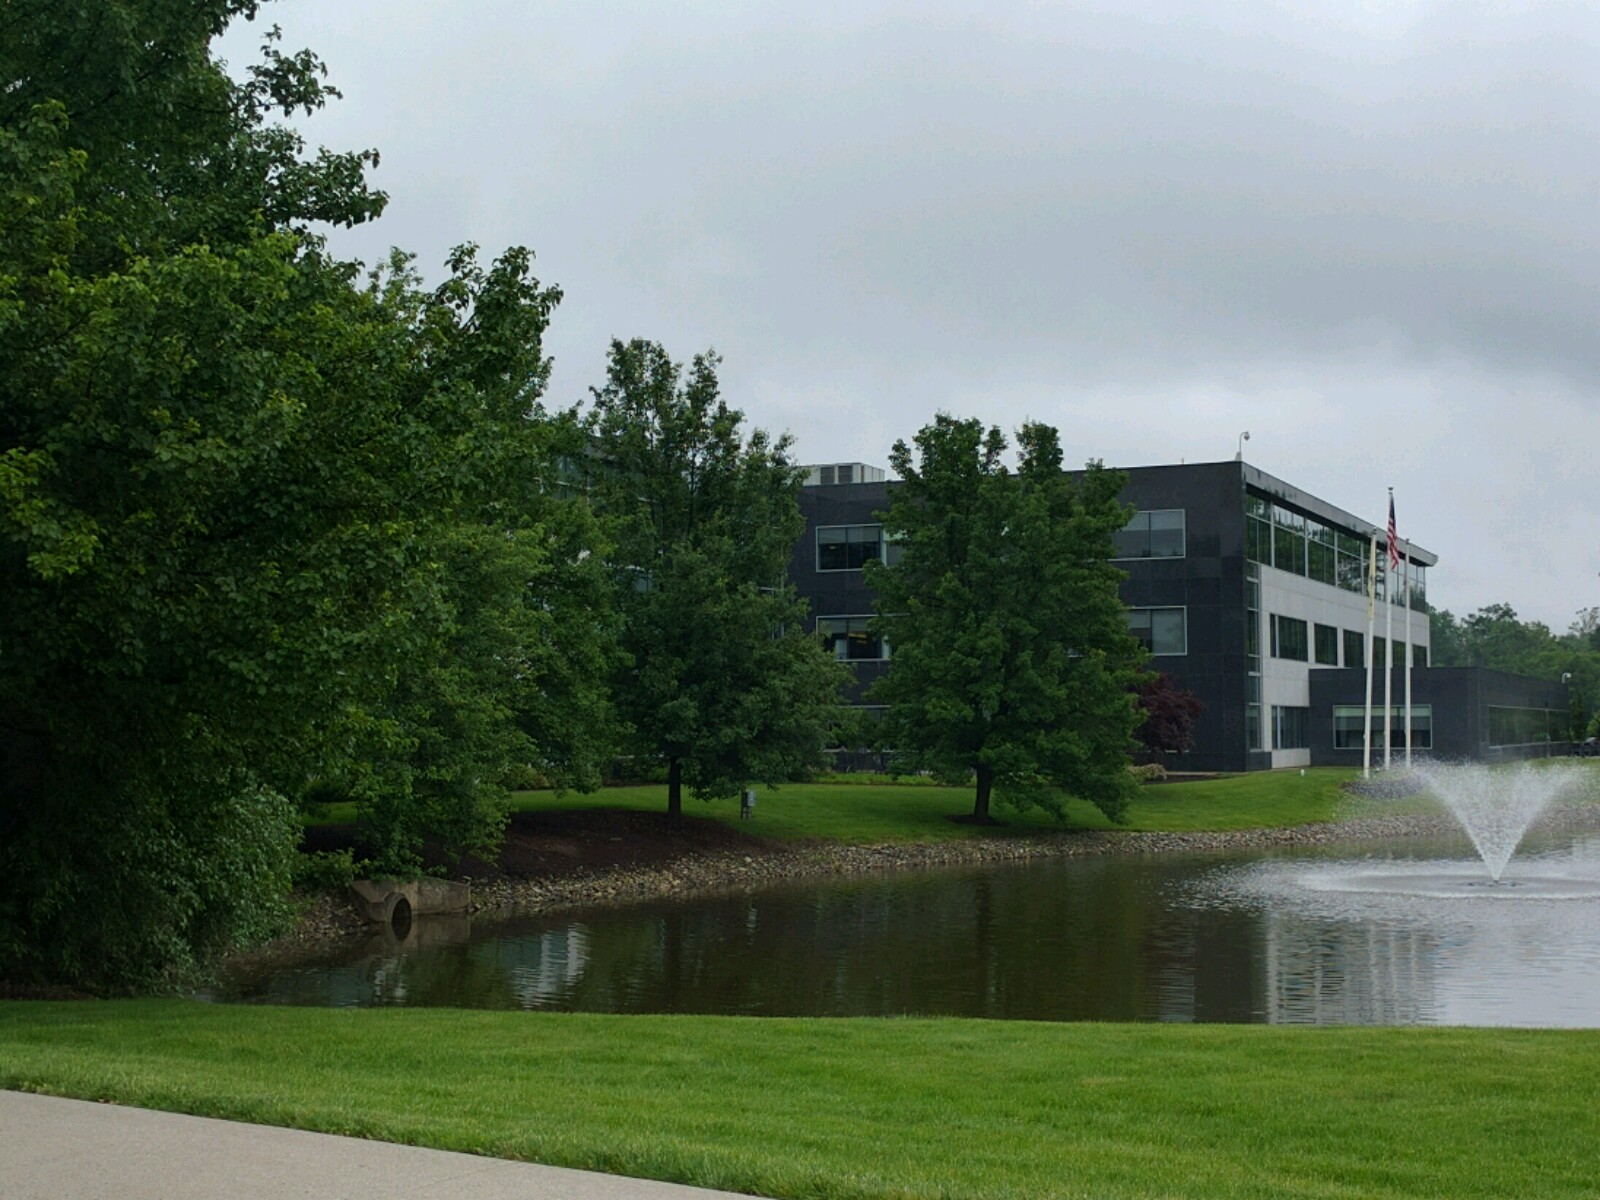 The Medicines Company's corporate headquarters in Parsippany, New Jersey.